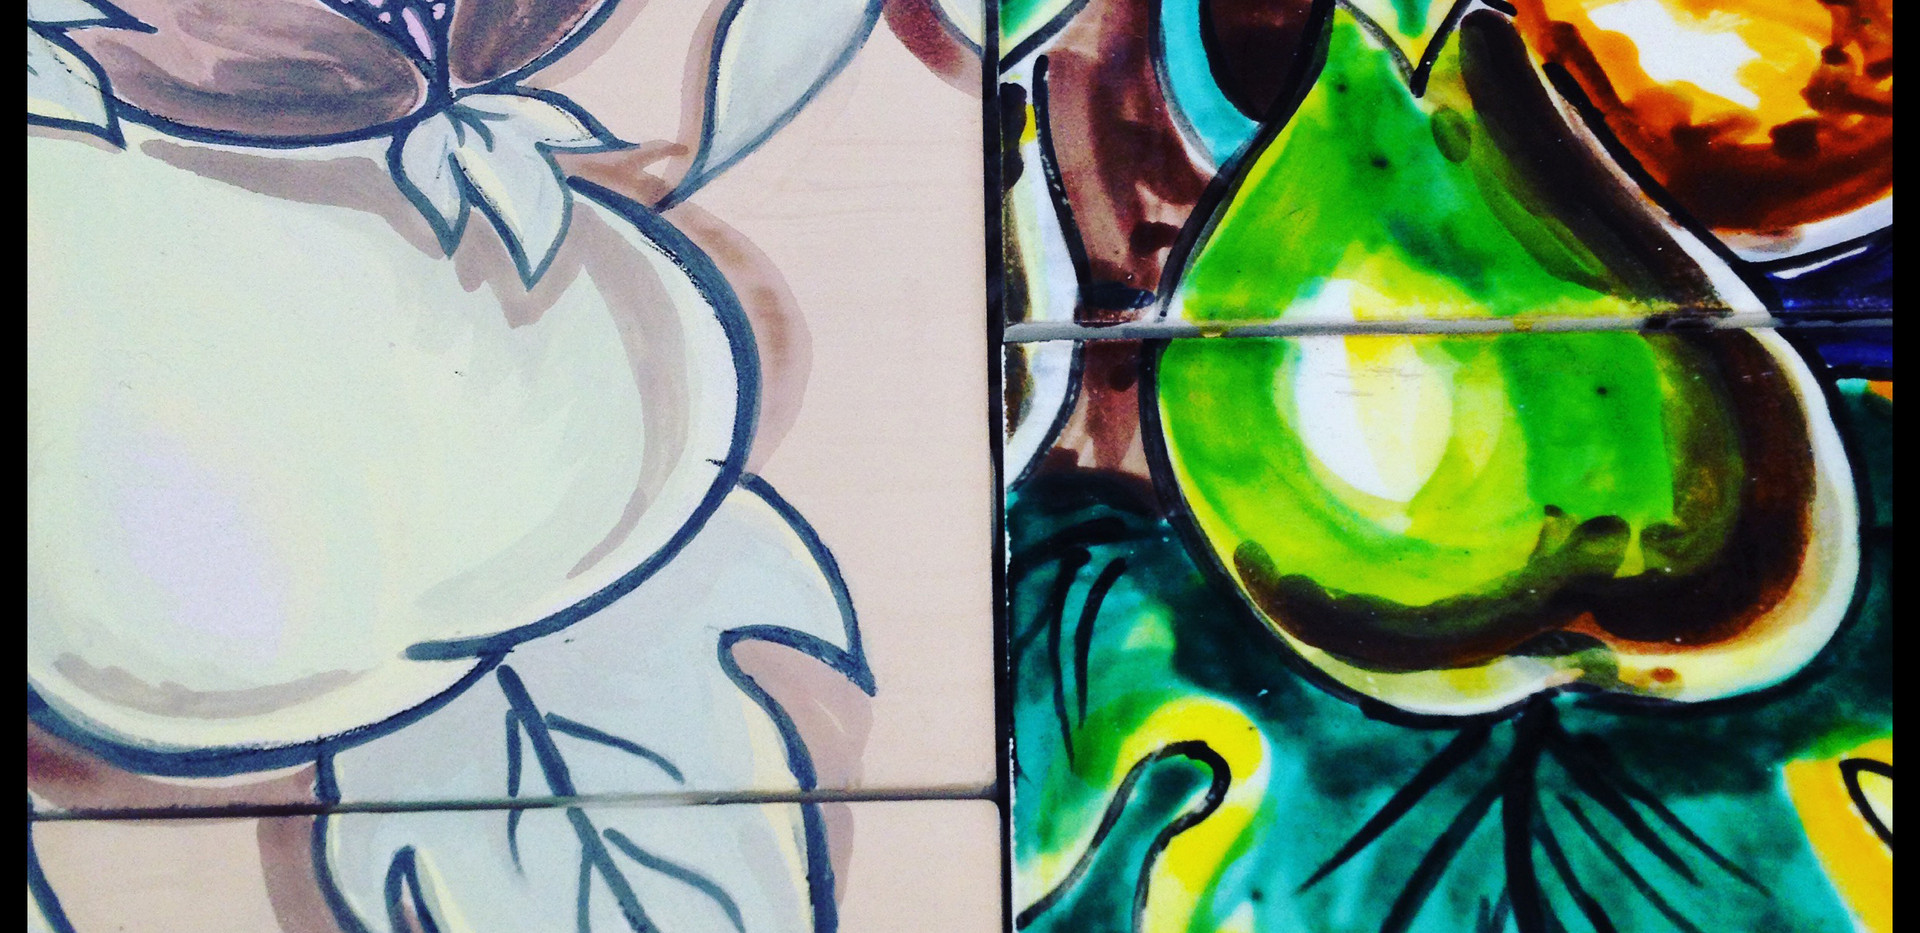 tile-wall-painted-by-hand-glazed-fruit-c